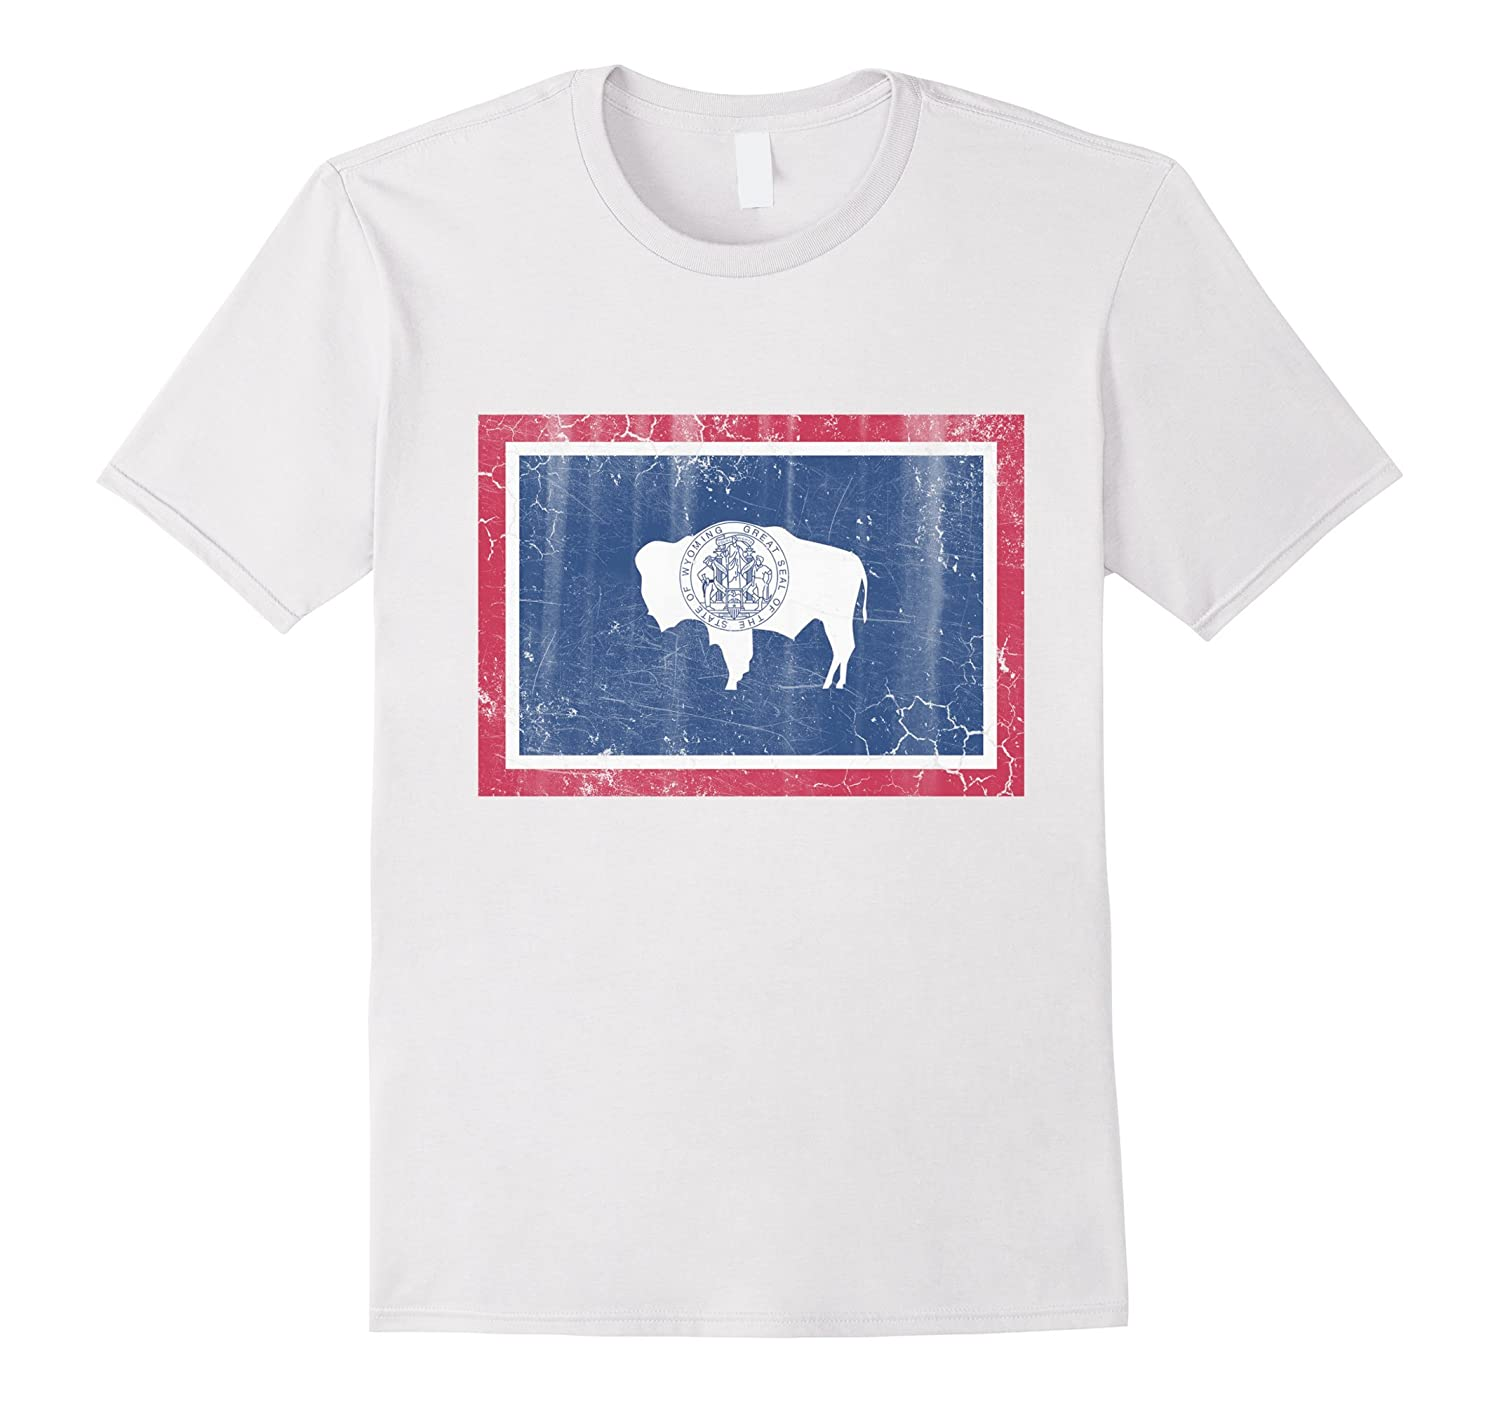 Vintage wyoming flag distressed t shirt cl colamaga for Custom t shirts distressed